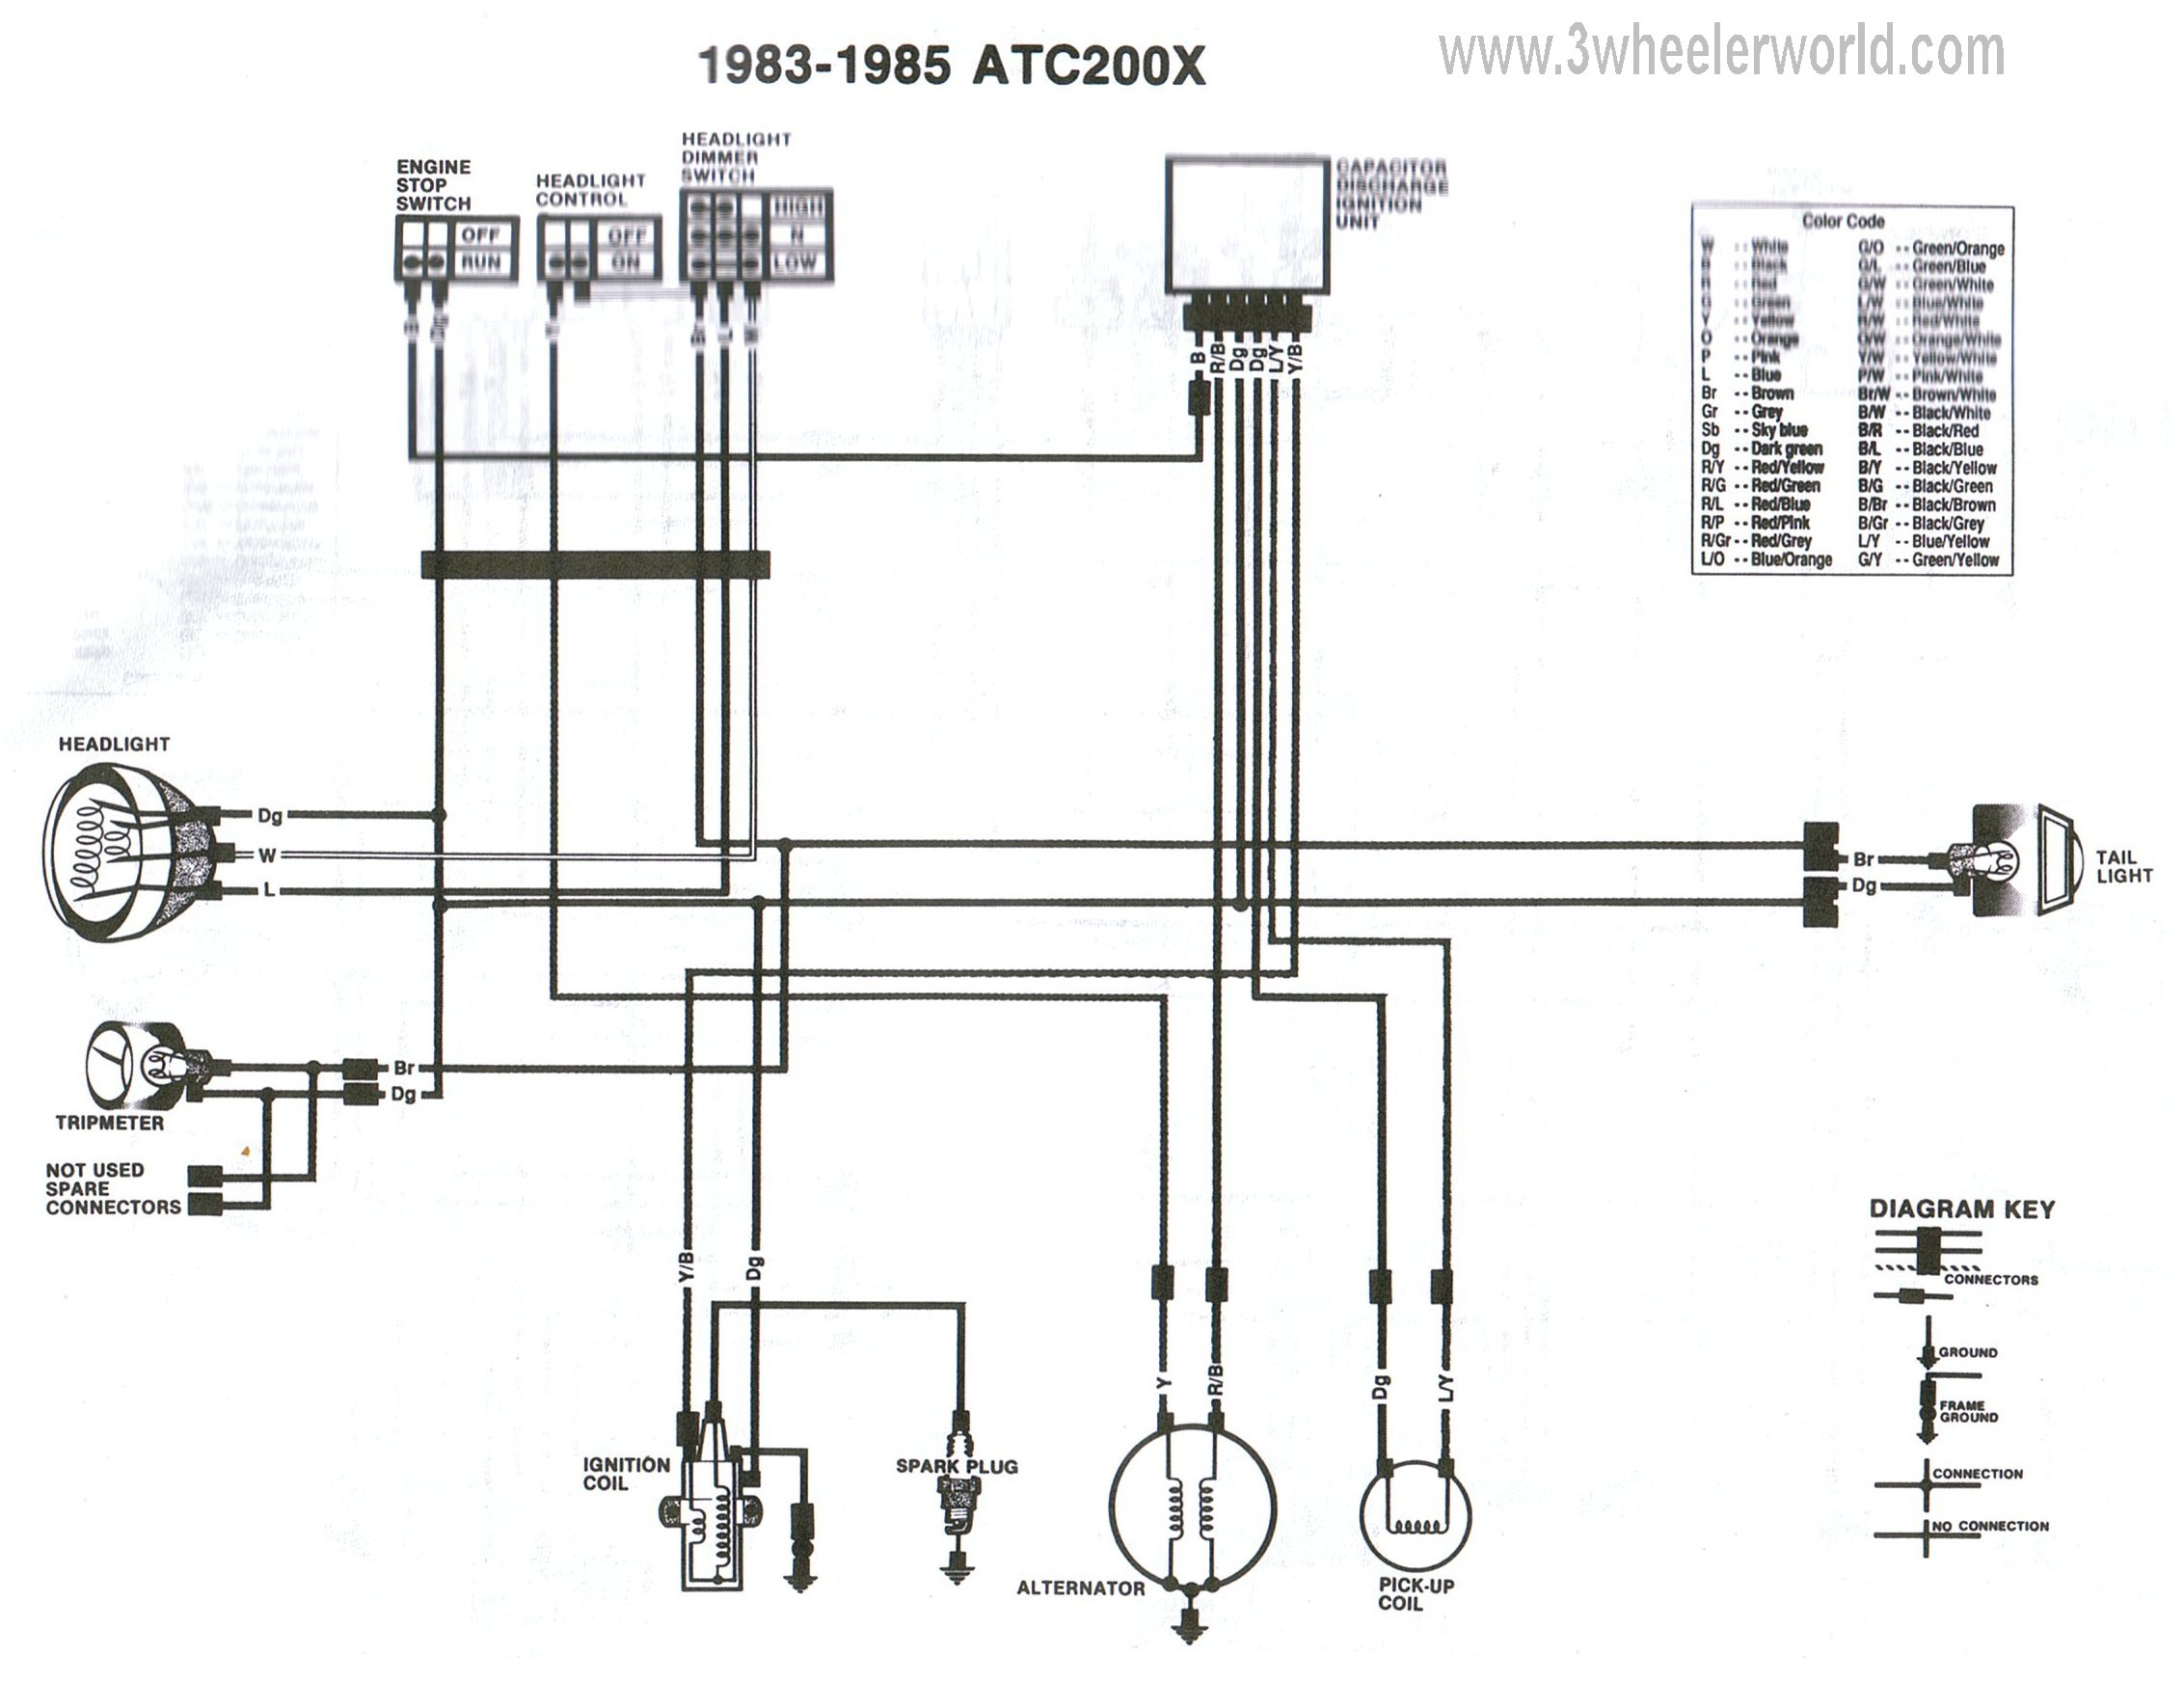 ATC200Xx83Thru85 3 wheeler world tech help honda wiring diagrams bajaj three wheeler wiring diagram pdf at arjmand.co